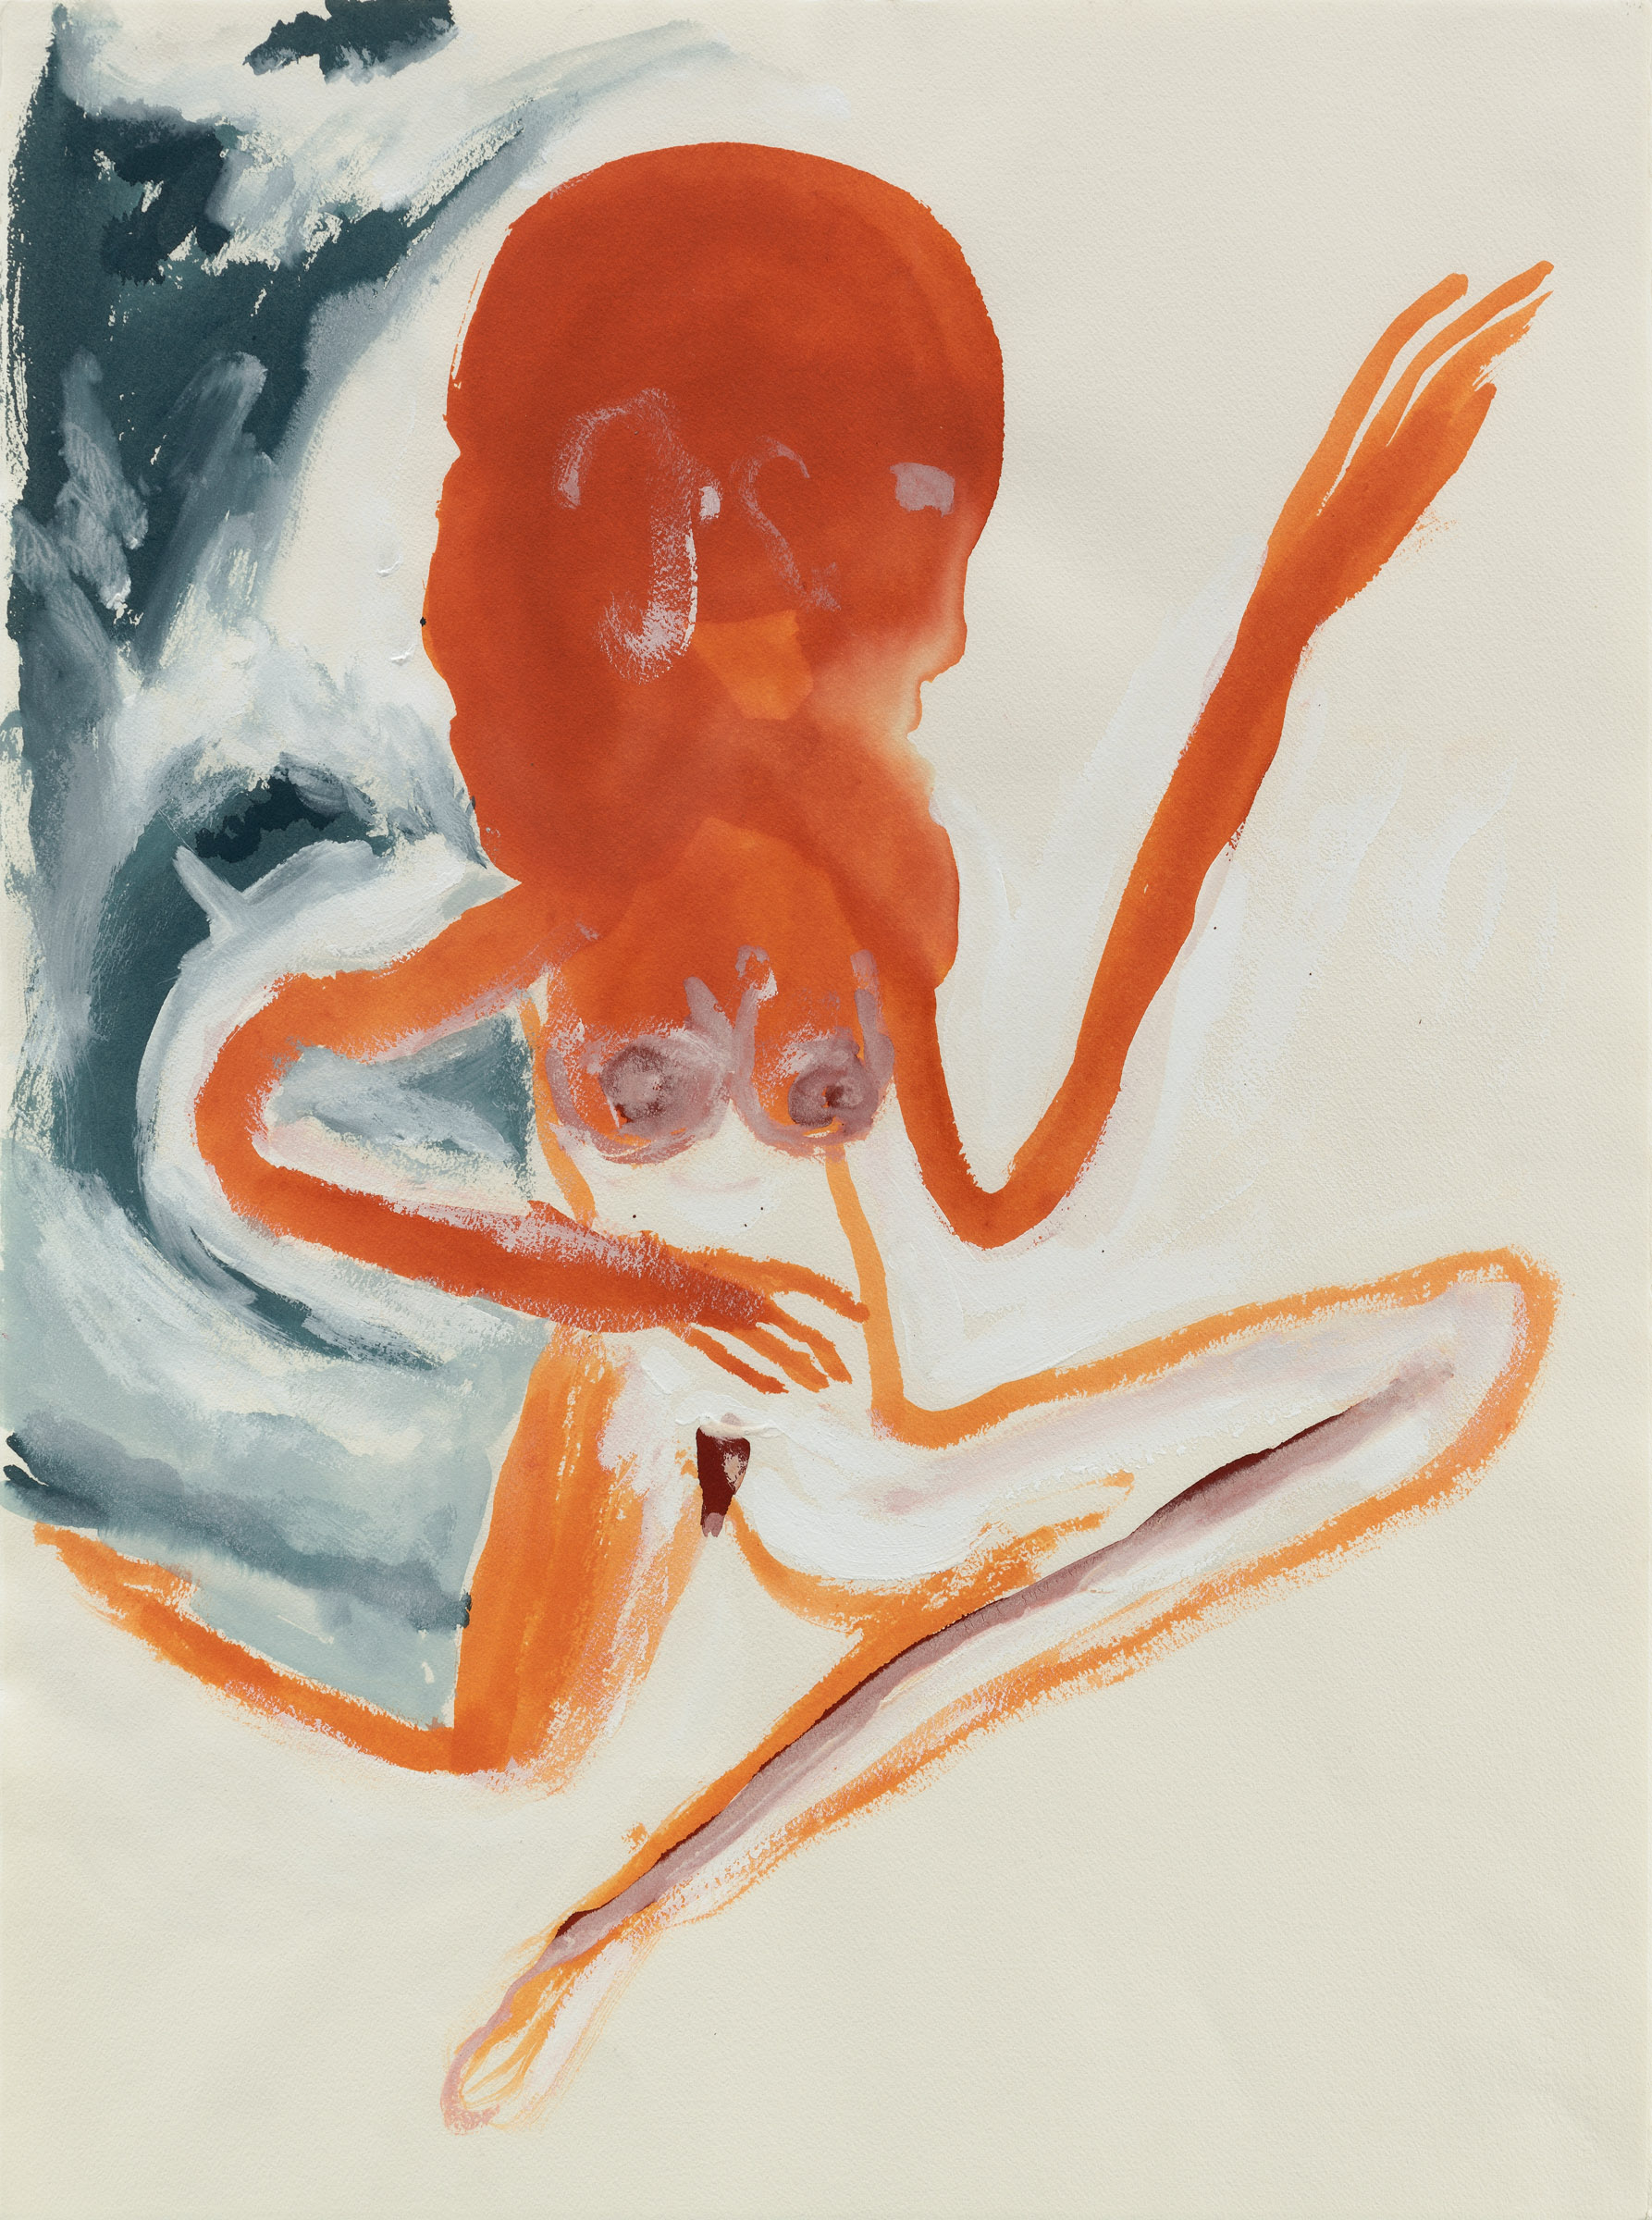 Don Van Vliet, Untitled (Woman), 1986 Gouache on paper Courtesy Michael Werner Gallery New York and London